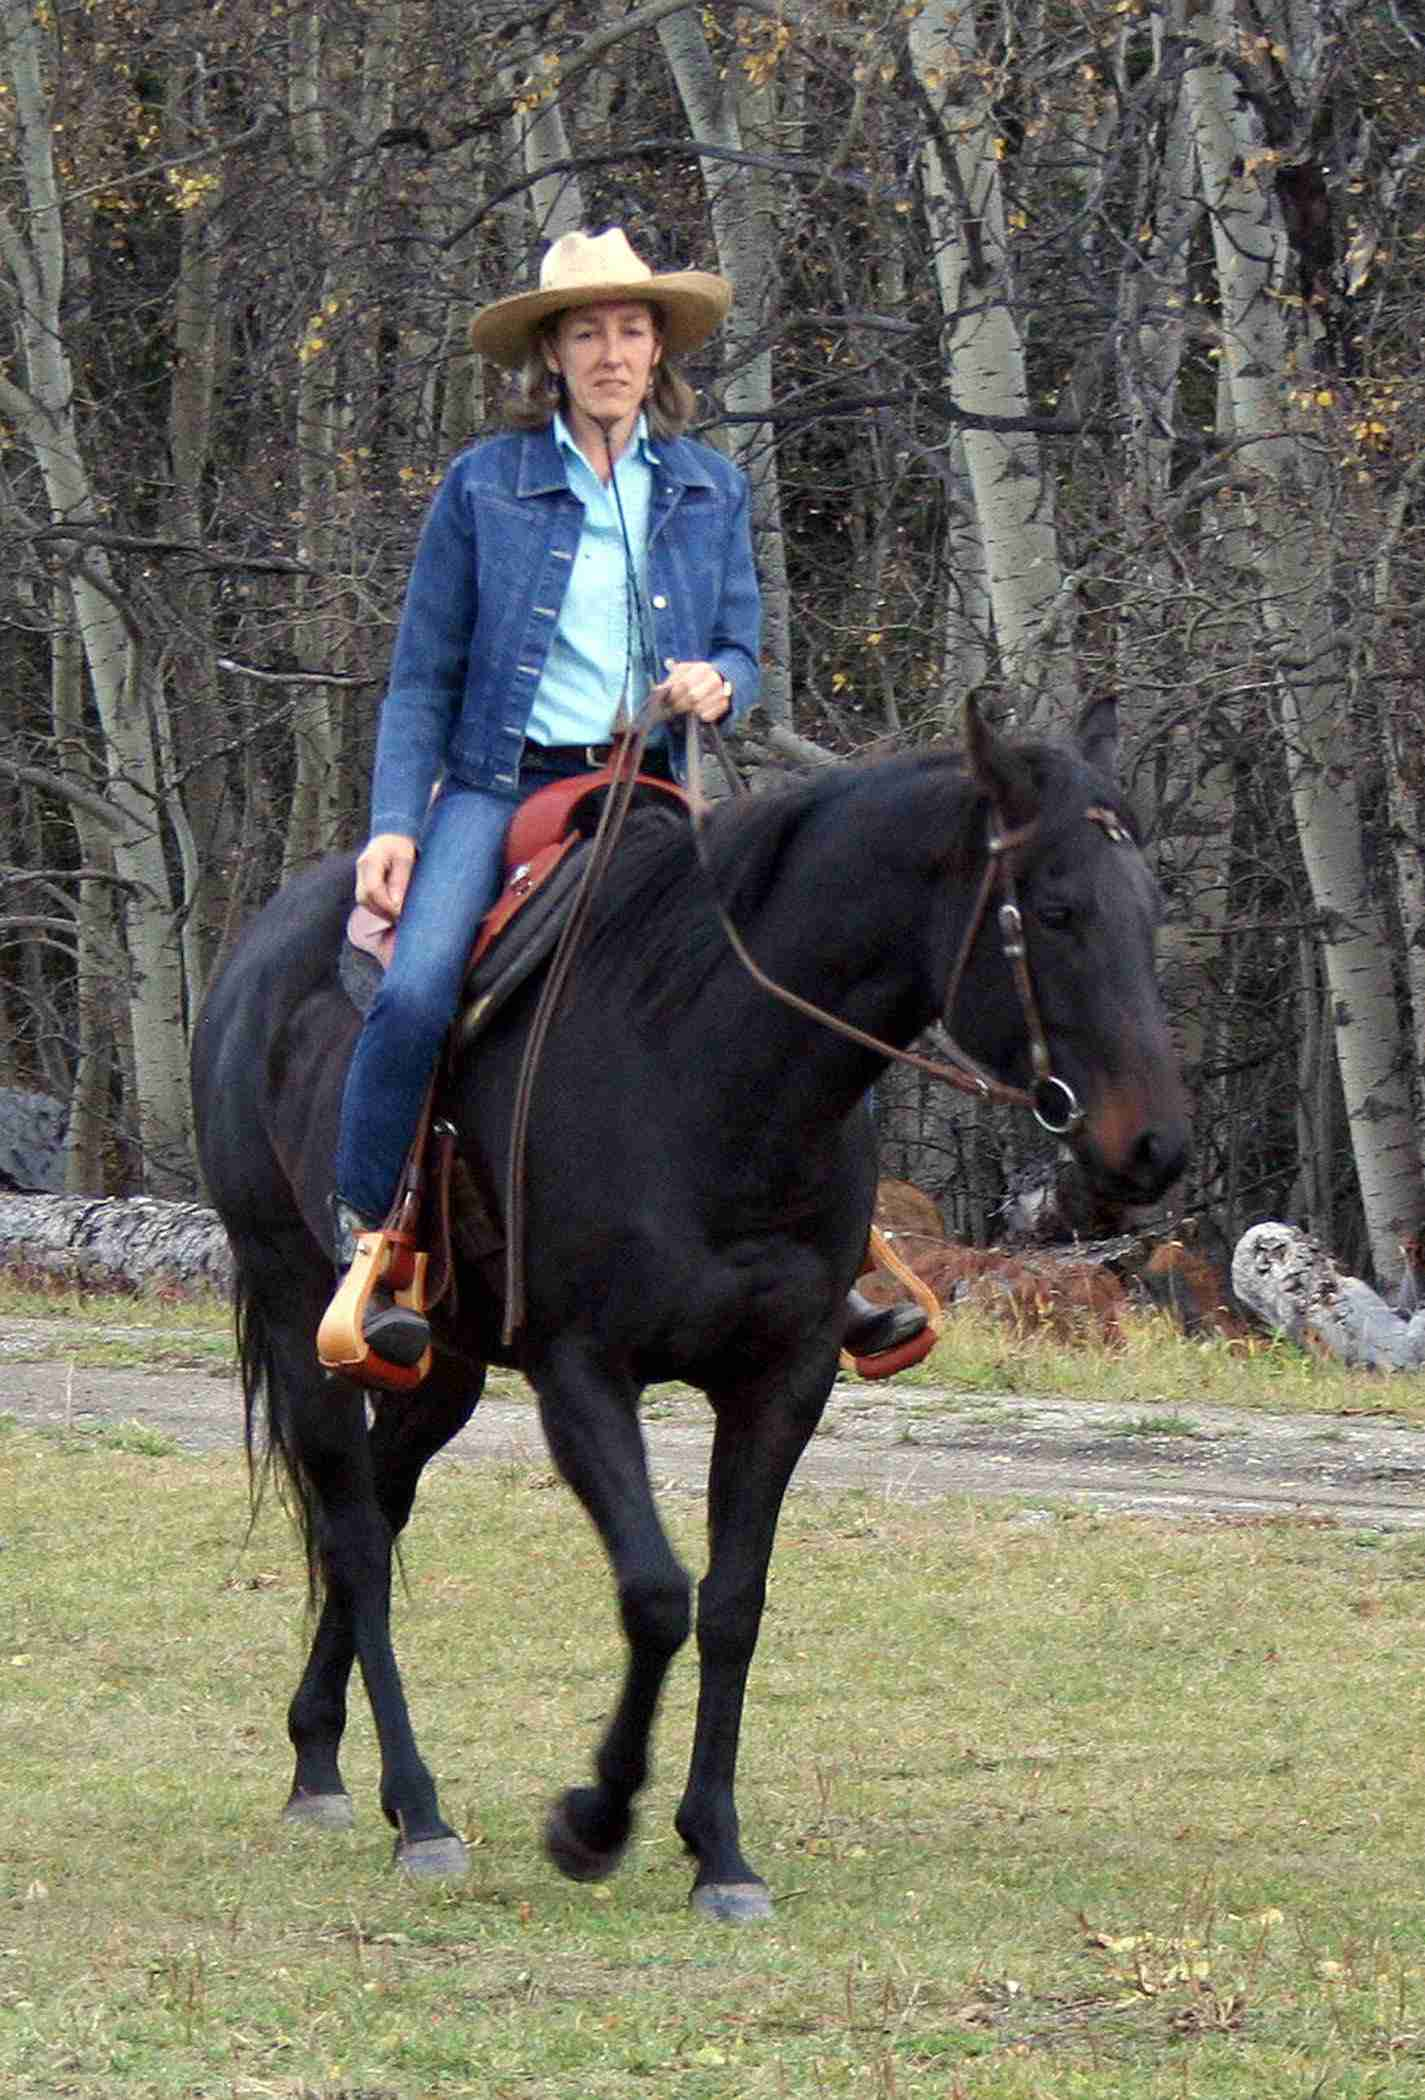 CAN A WESTERN SADDLE BE COMFORTABLE FOR WOMEN?